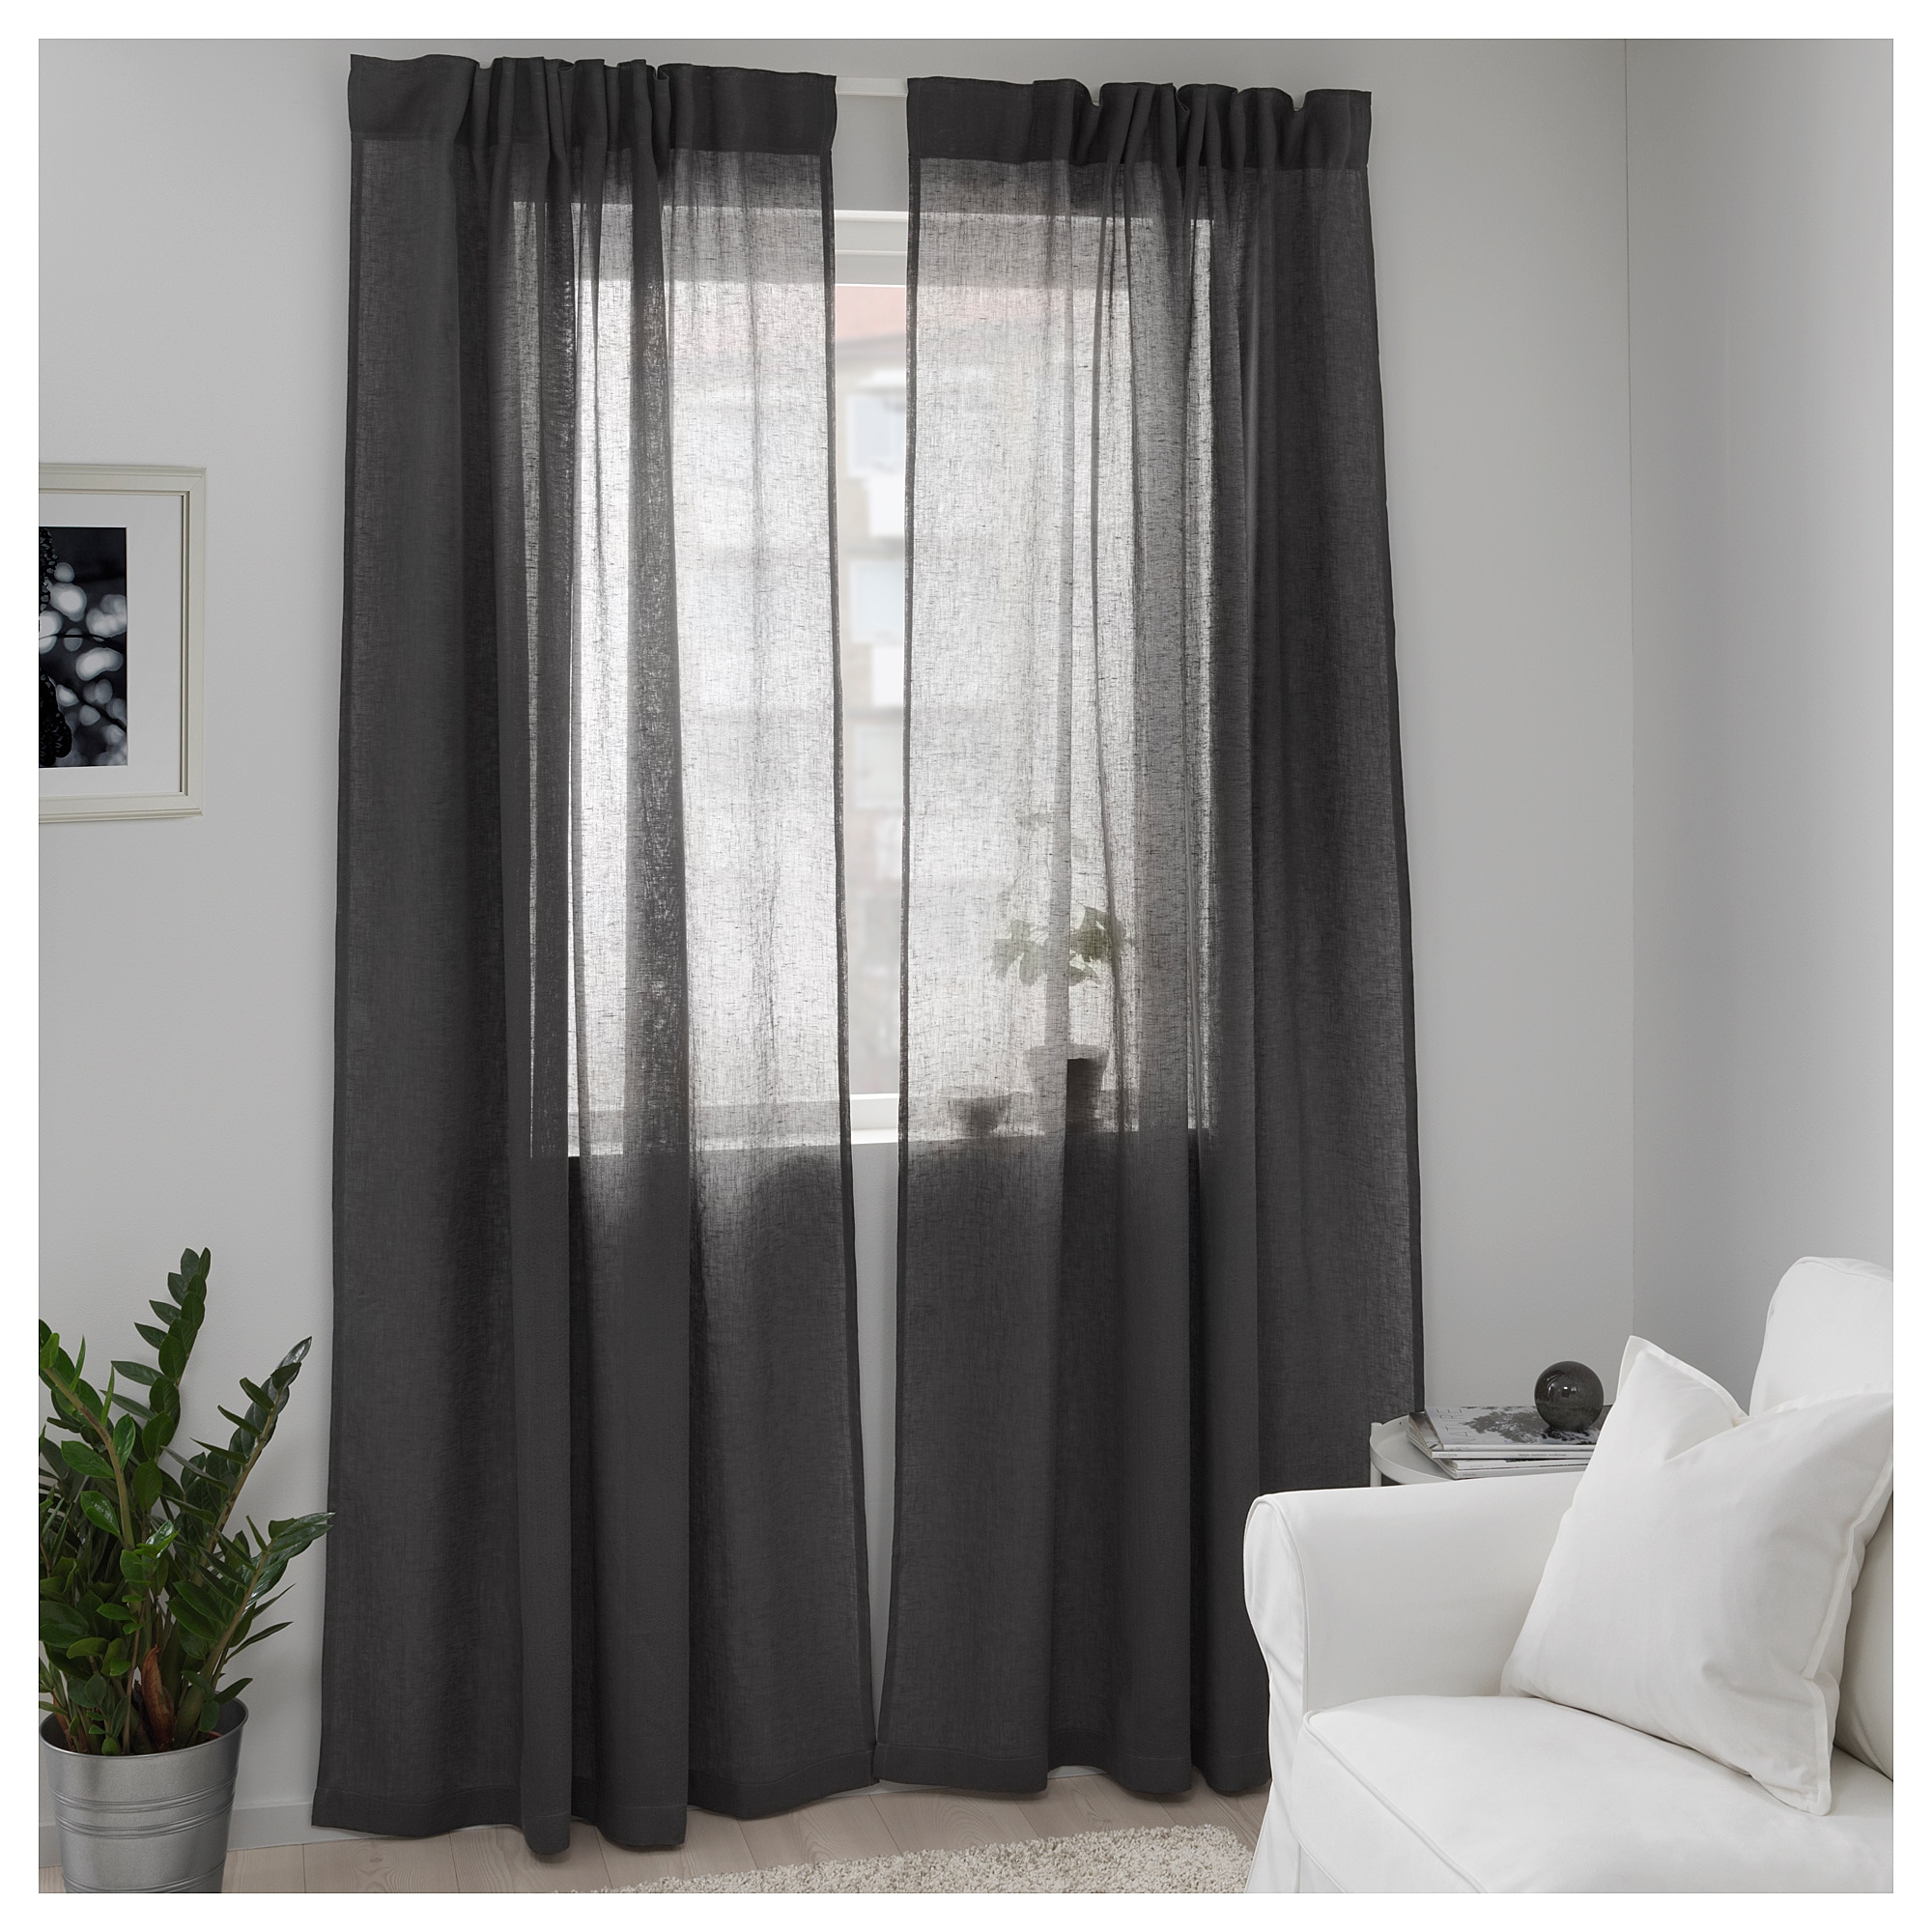 window bryant catalog natural kohls home and white full drapes of french navy valances treatments curtain curtains rods bronze gray cottage panels country linen size stripe lane draperies